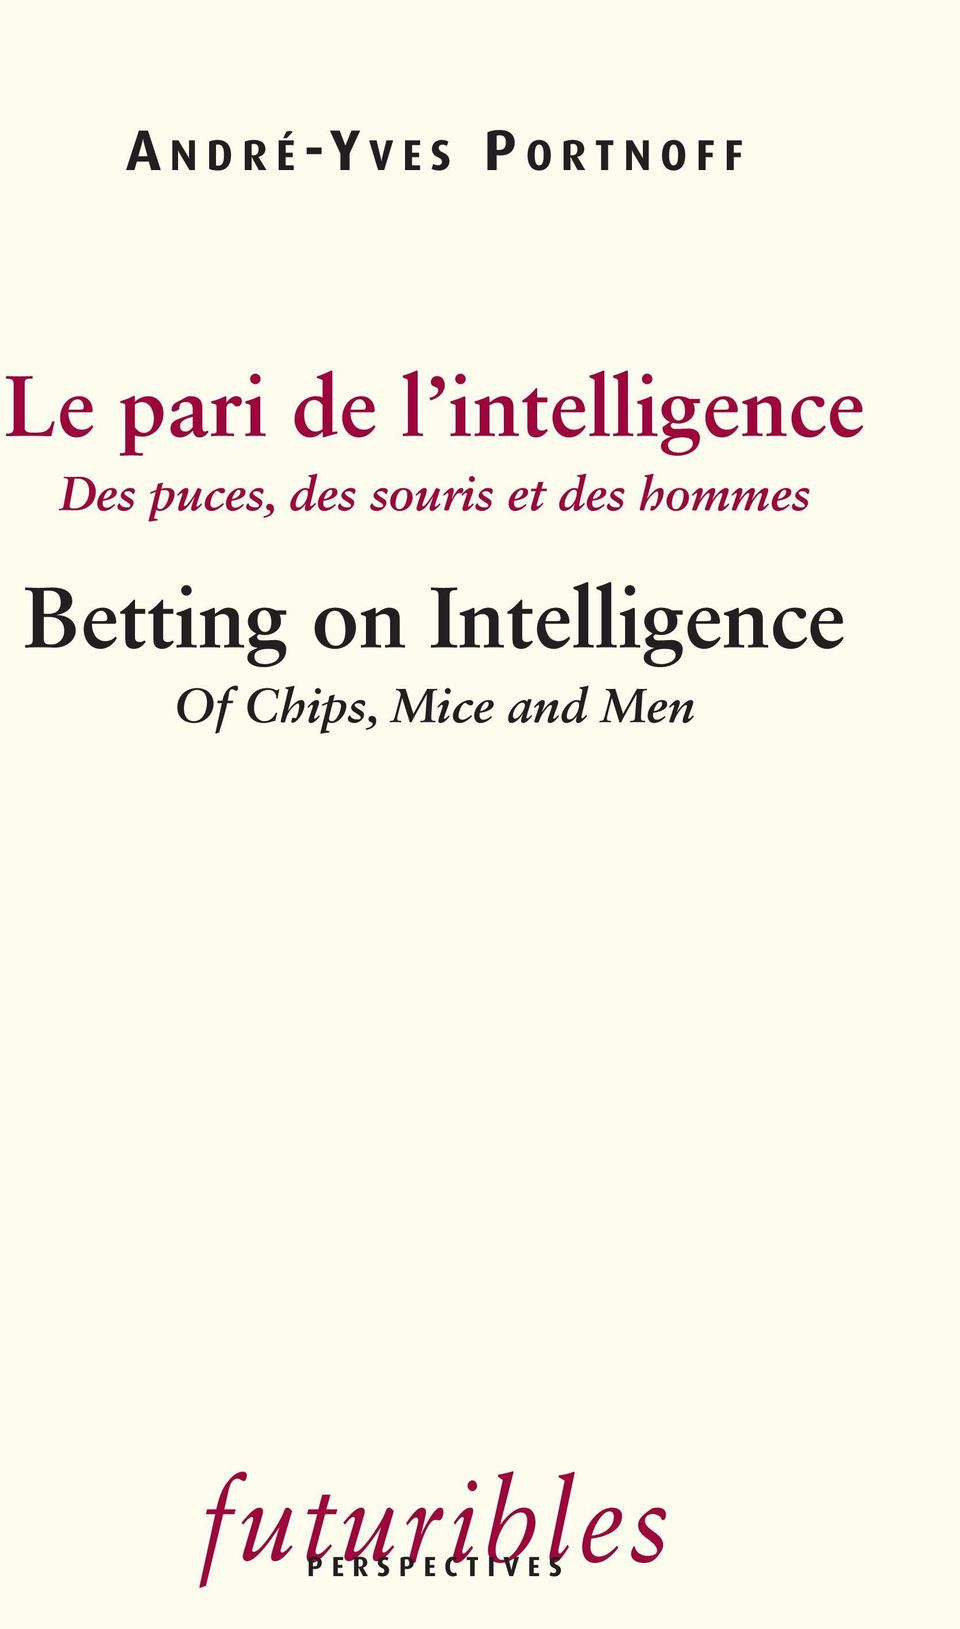 des hommes Betting on Intelligence Of Chips,